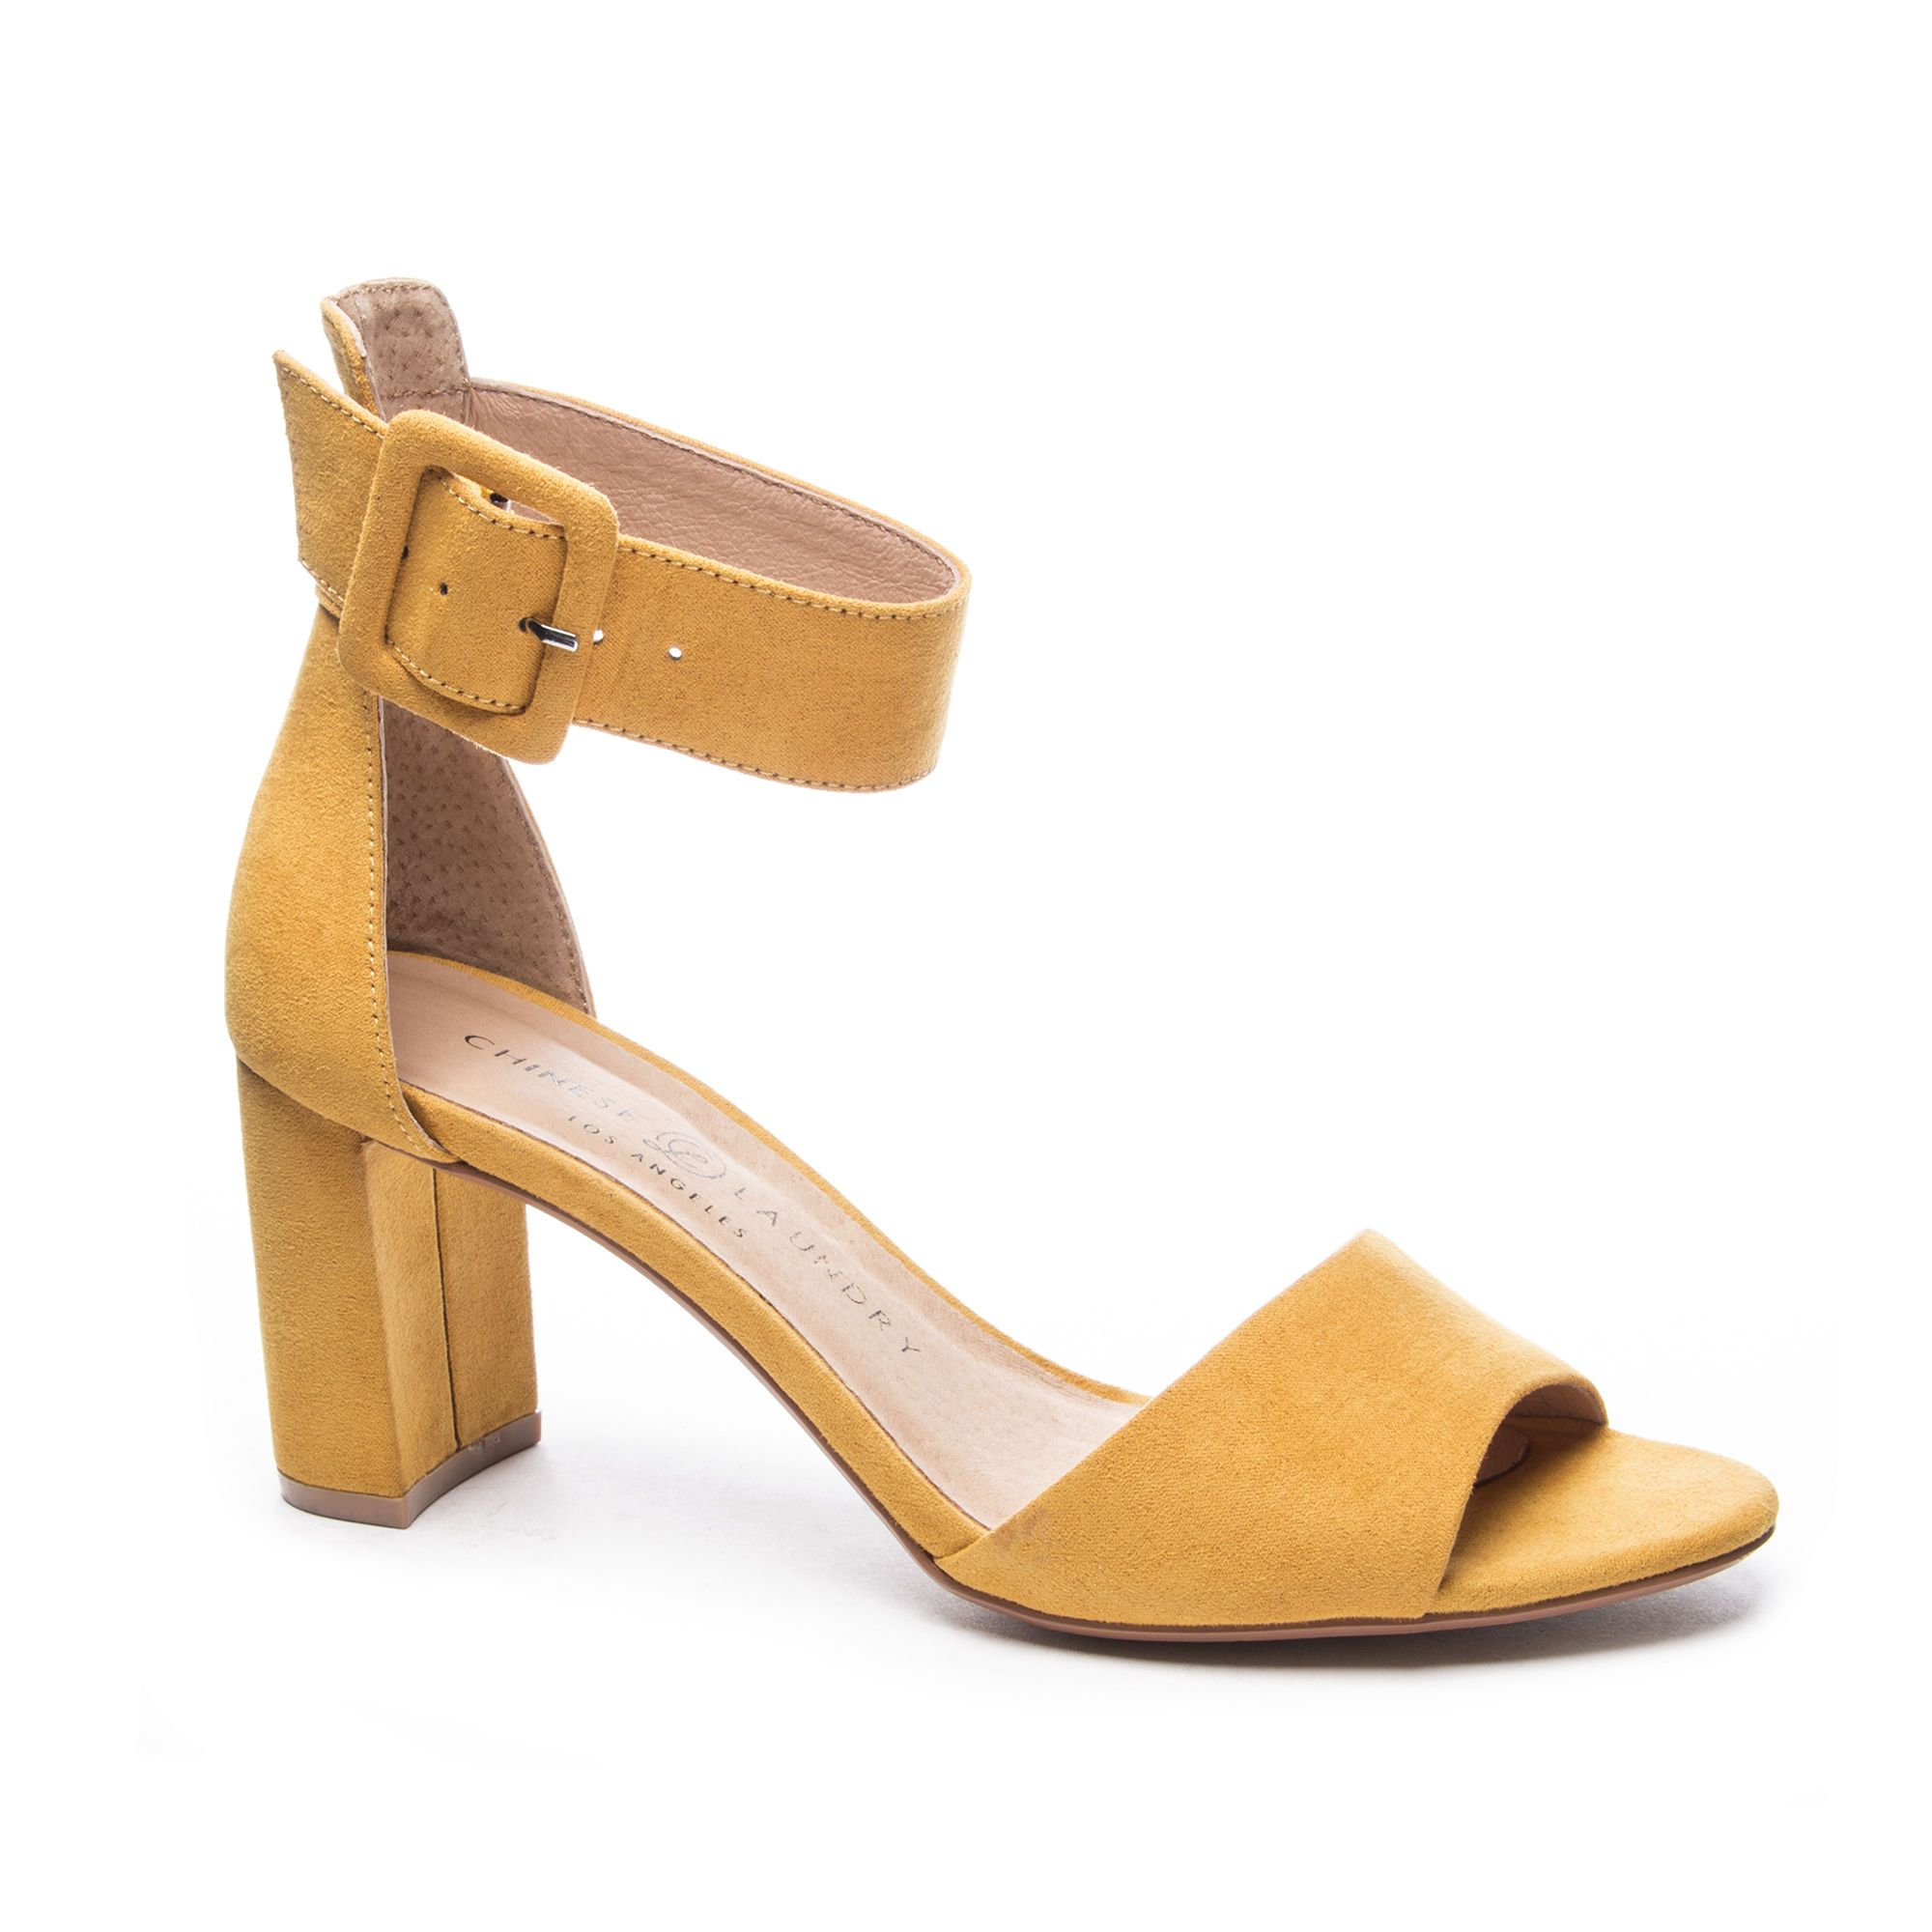 fe15f831ccd Chinese Laundry Rumor Micro Suede Ankle Strap Sandal   Chinese ...